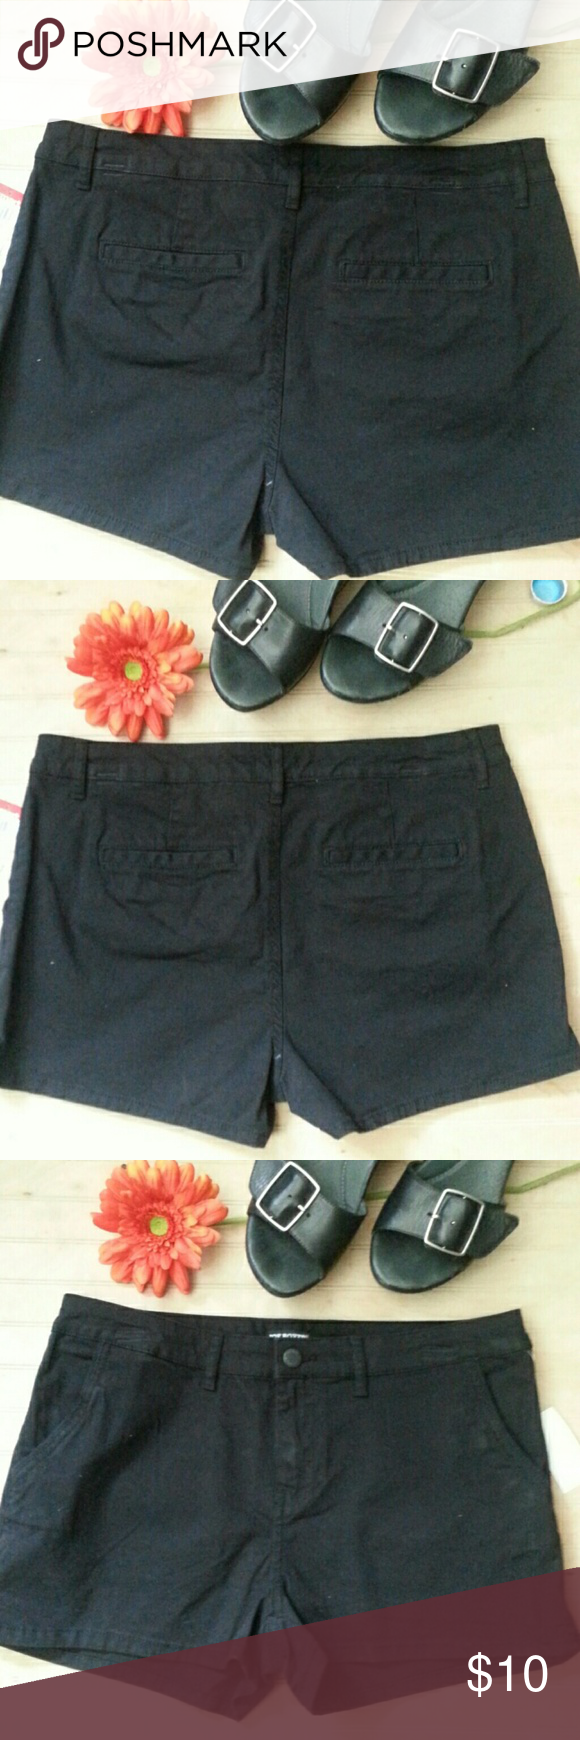 NWT Black Shorts Wardrobe staple!  Little black cotton shorts. These have some stretch and hit the upper thigh.  98% cotton / 2 % spandex Joe Boxer Shorts